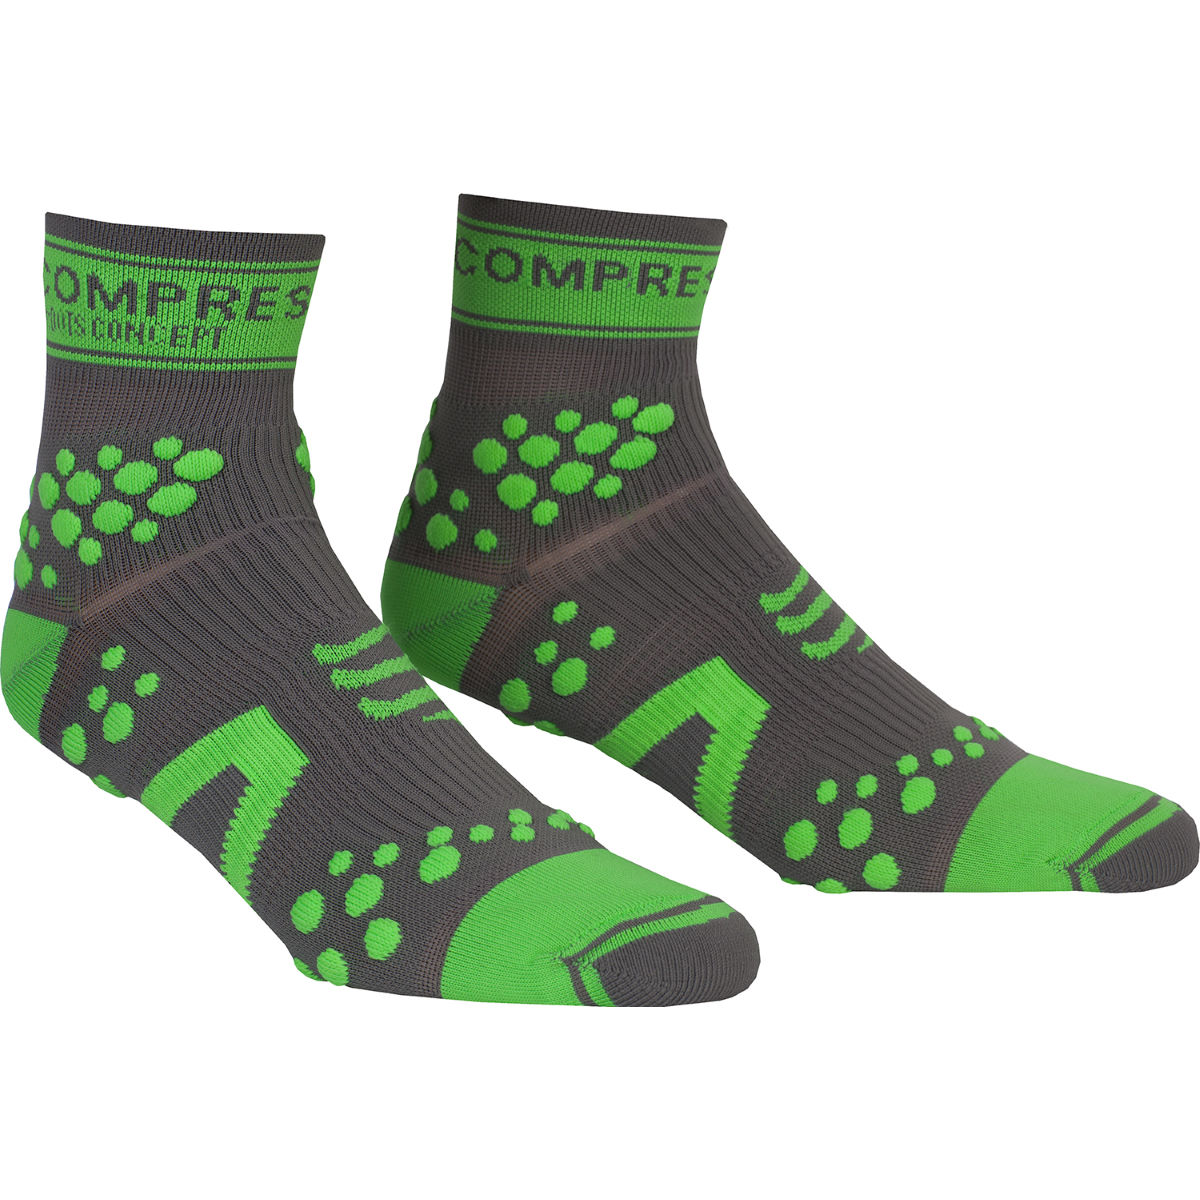 Compressport Pro Racing Socks (Trail)